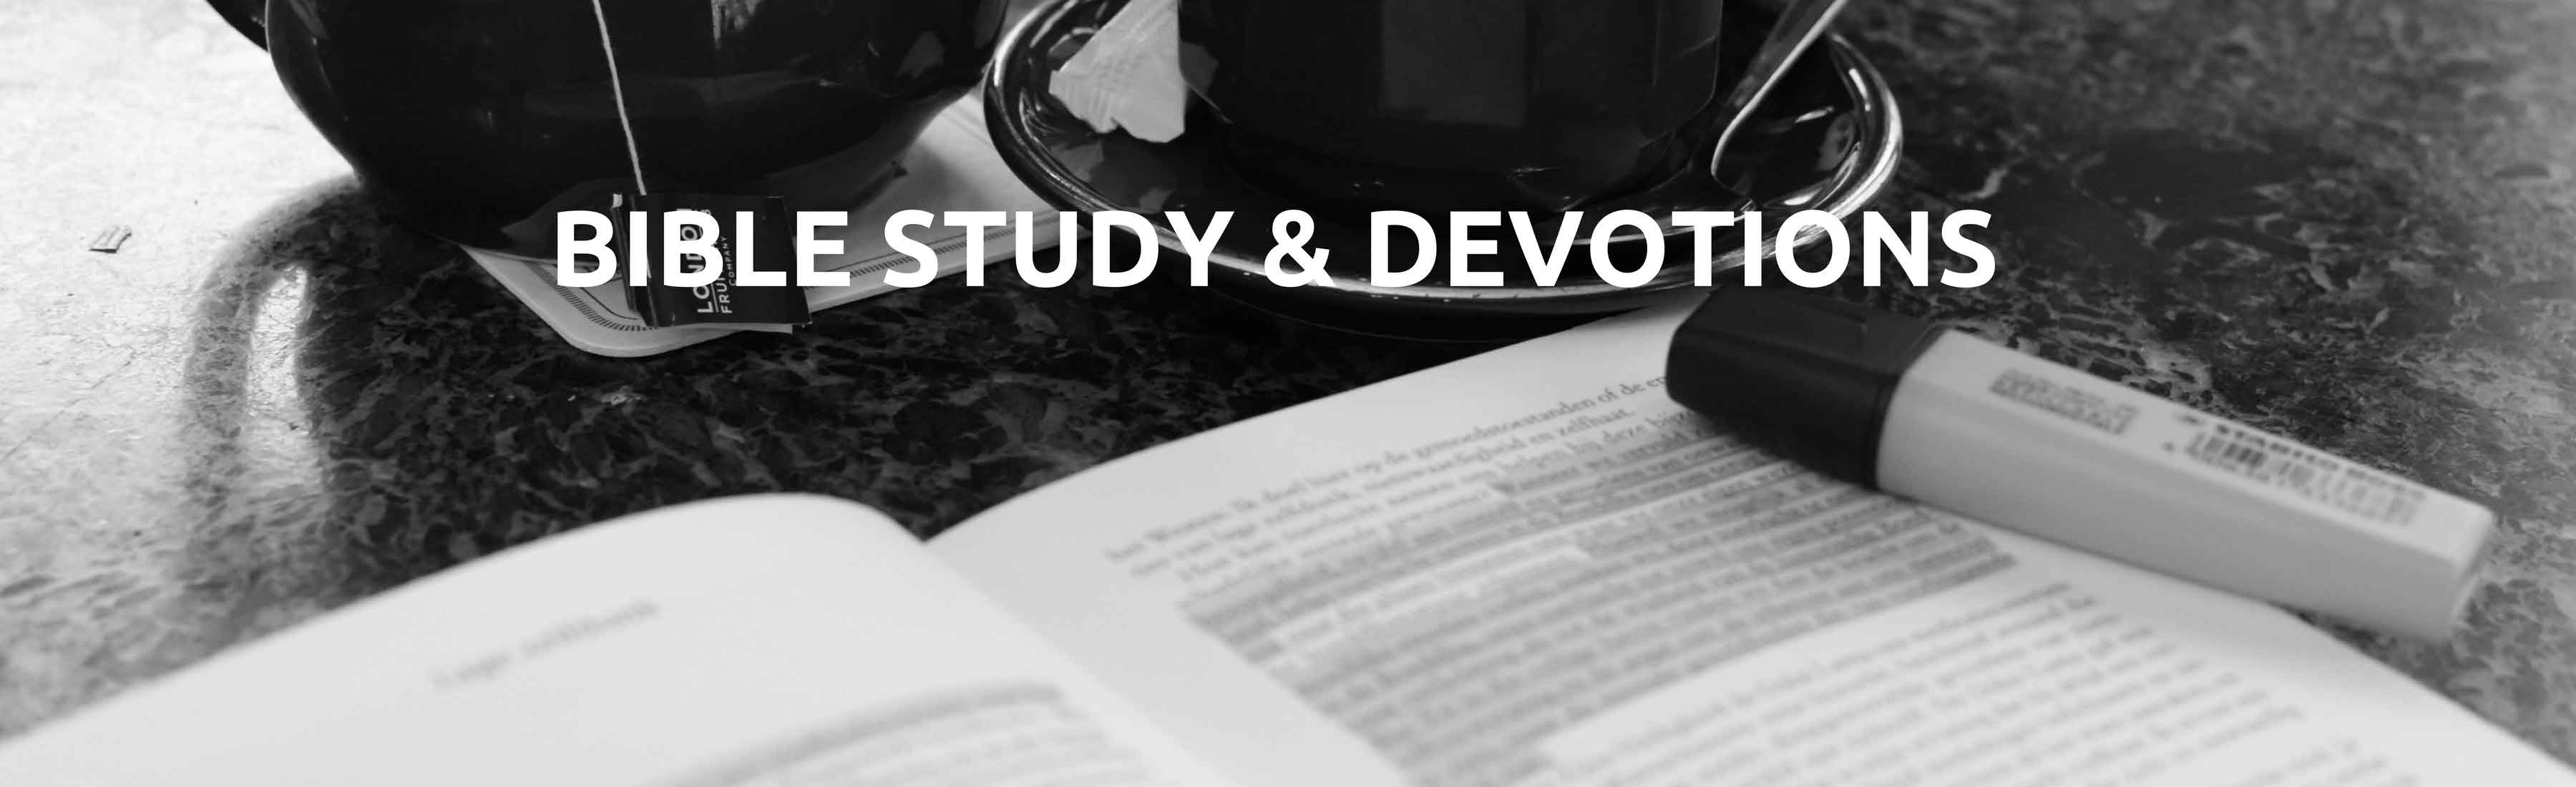 bible-study-&-devotions